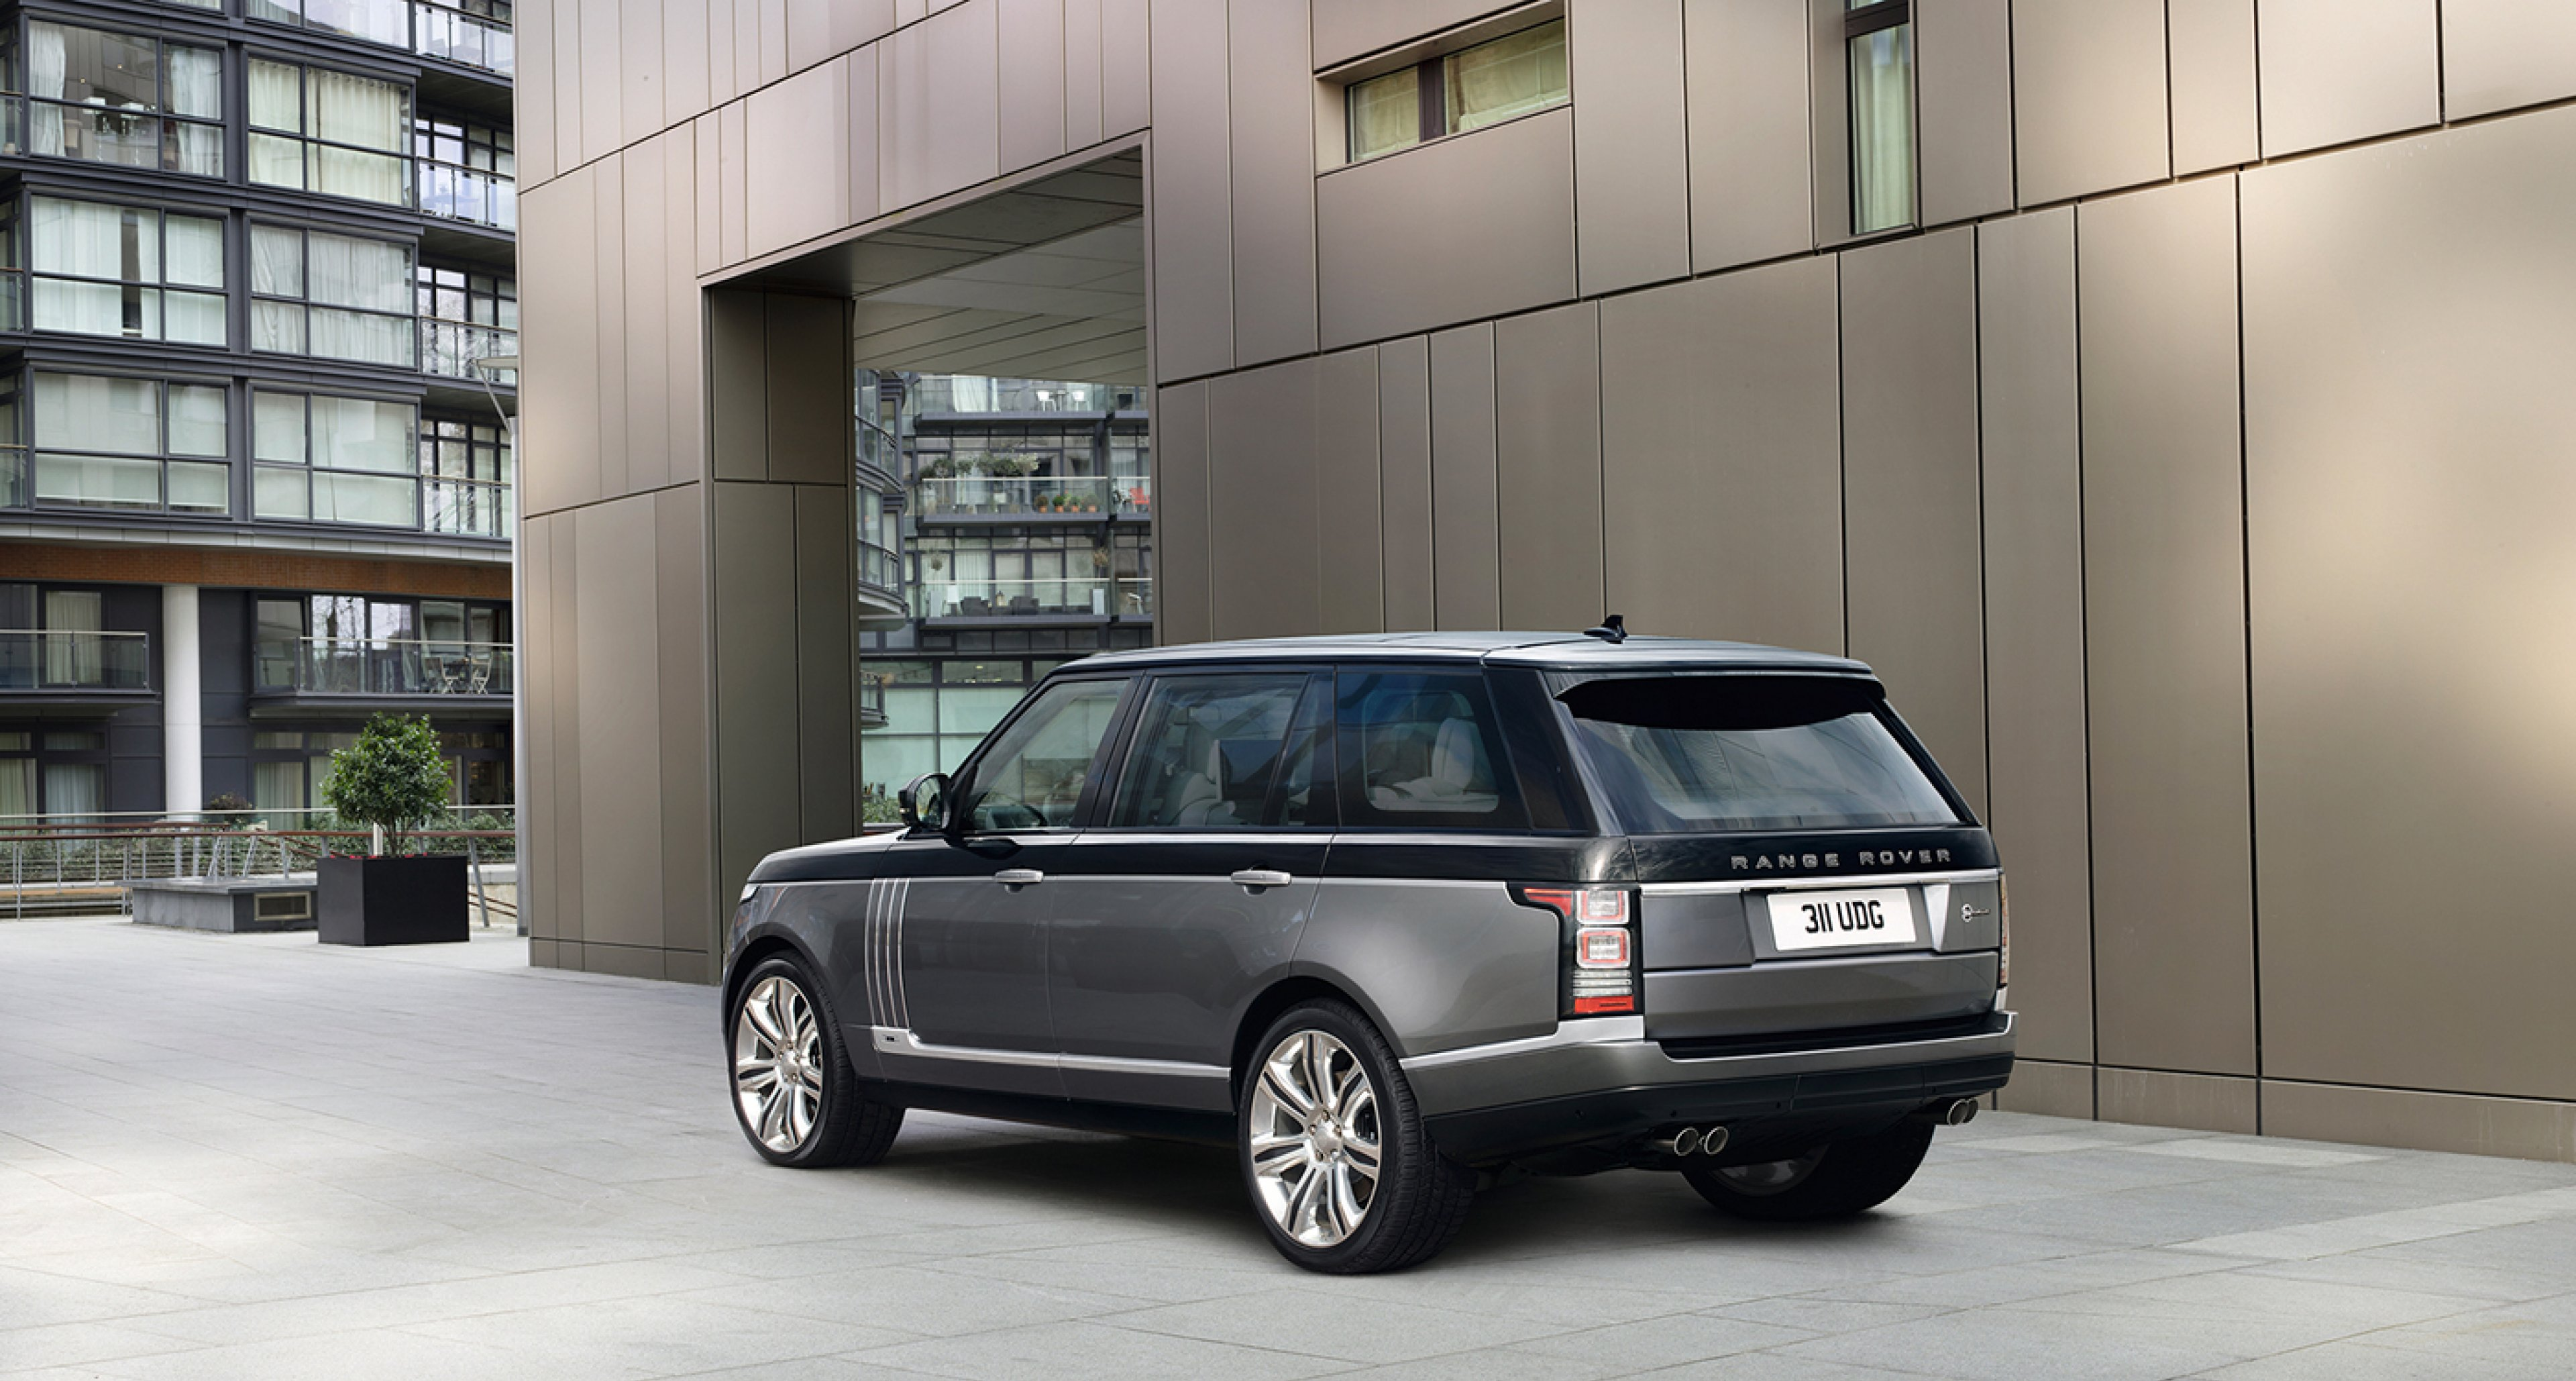 Meet The Two Tone 200 000 Range Rover Sv Autobiography